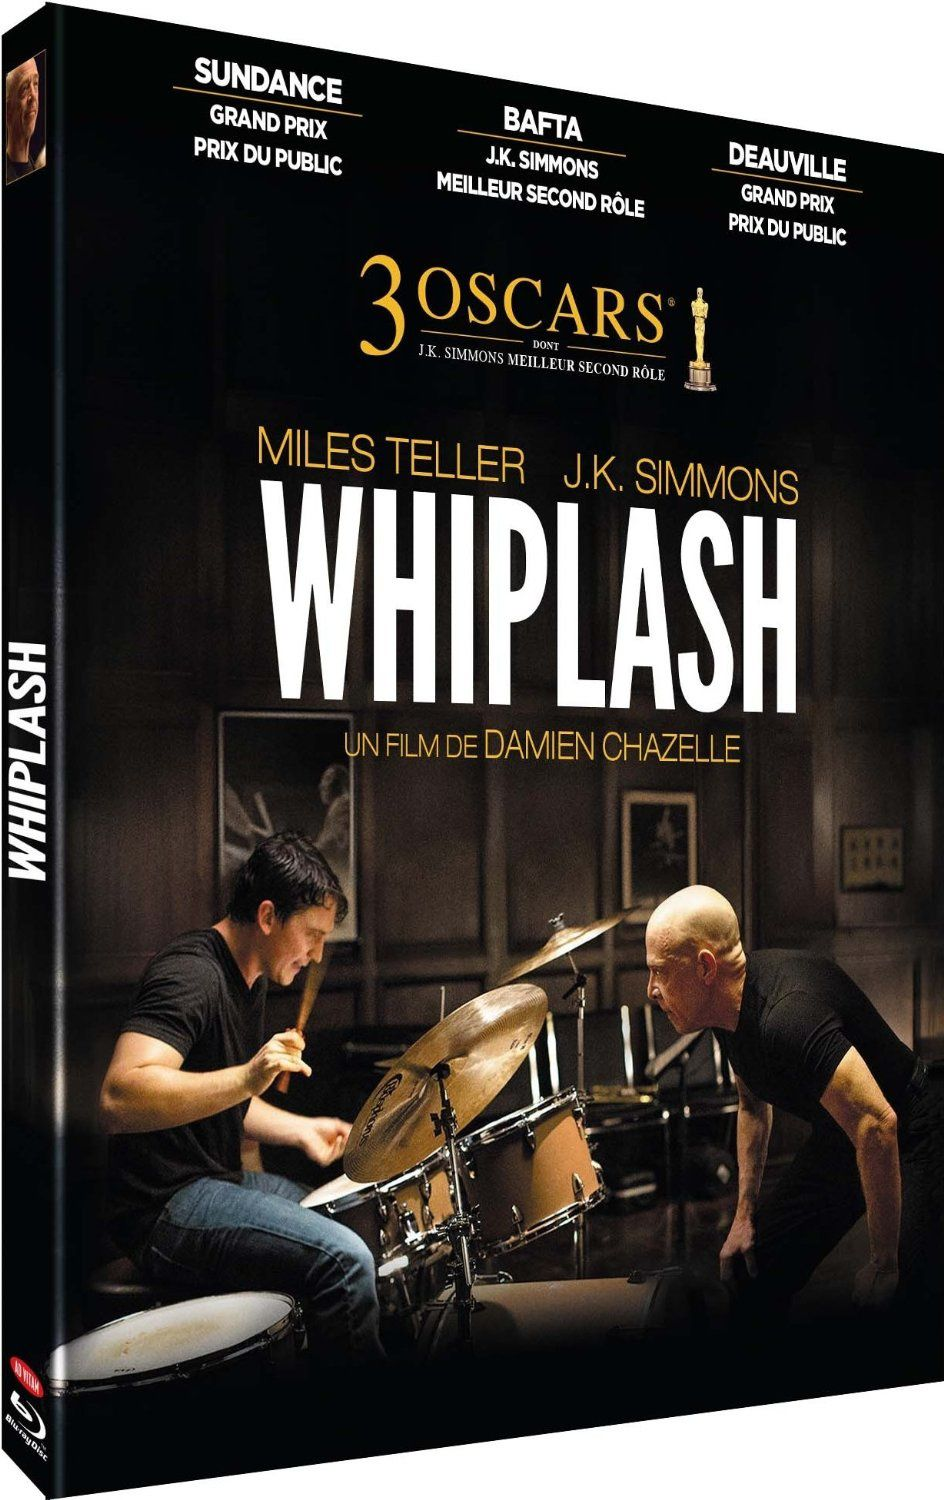 Whiplash en blu-ray